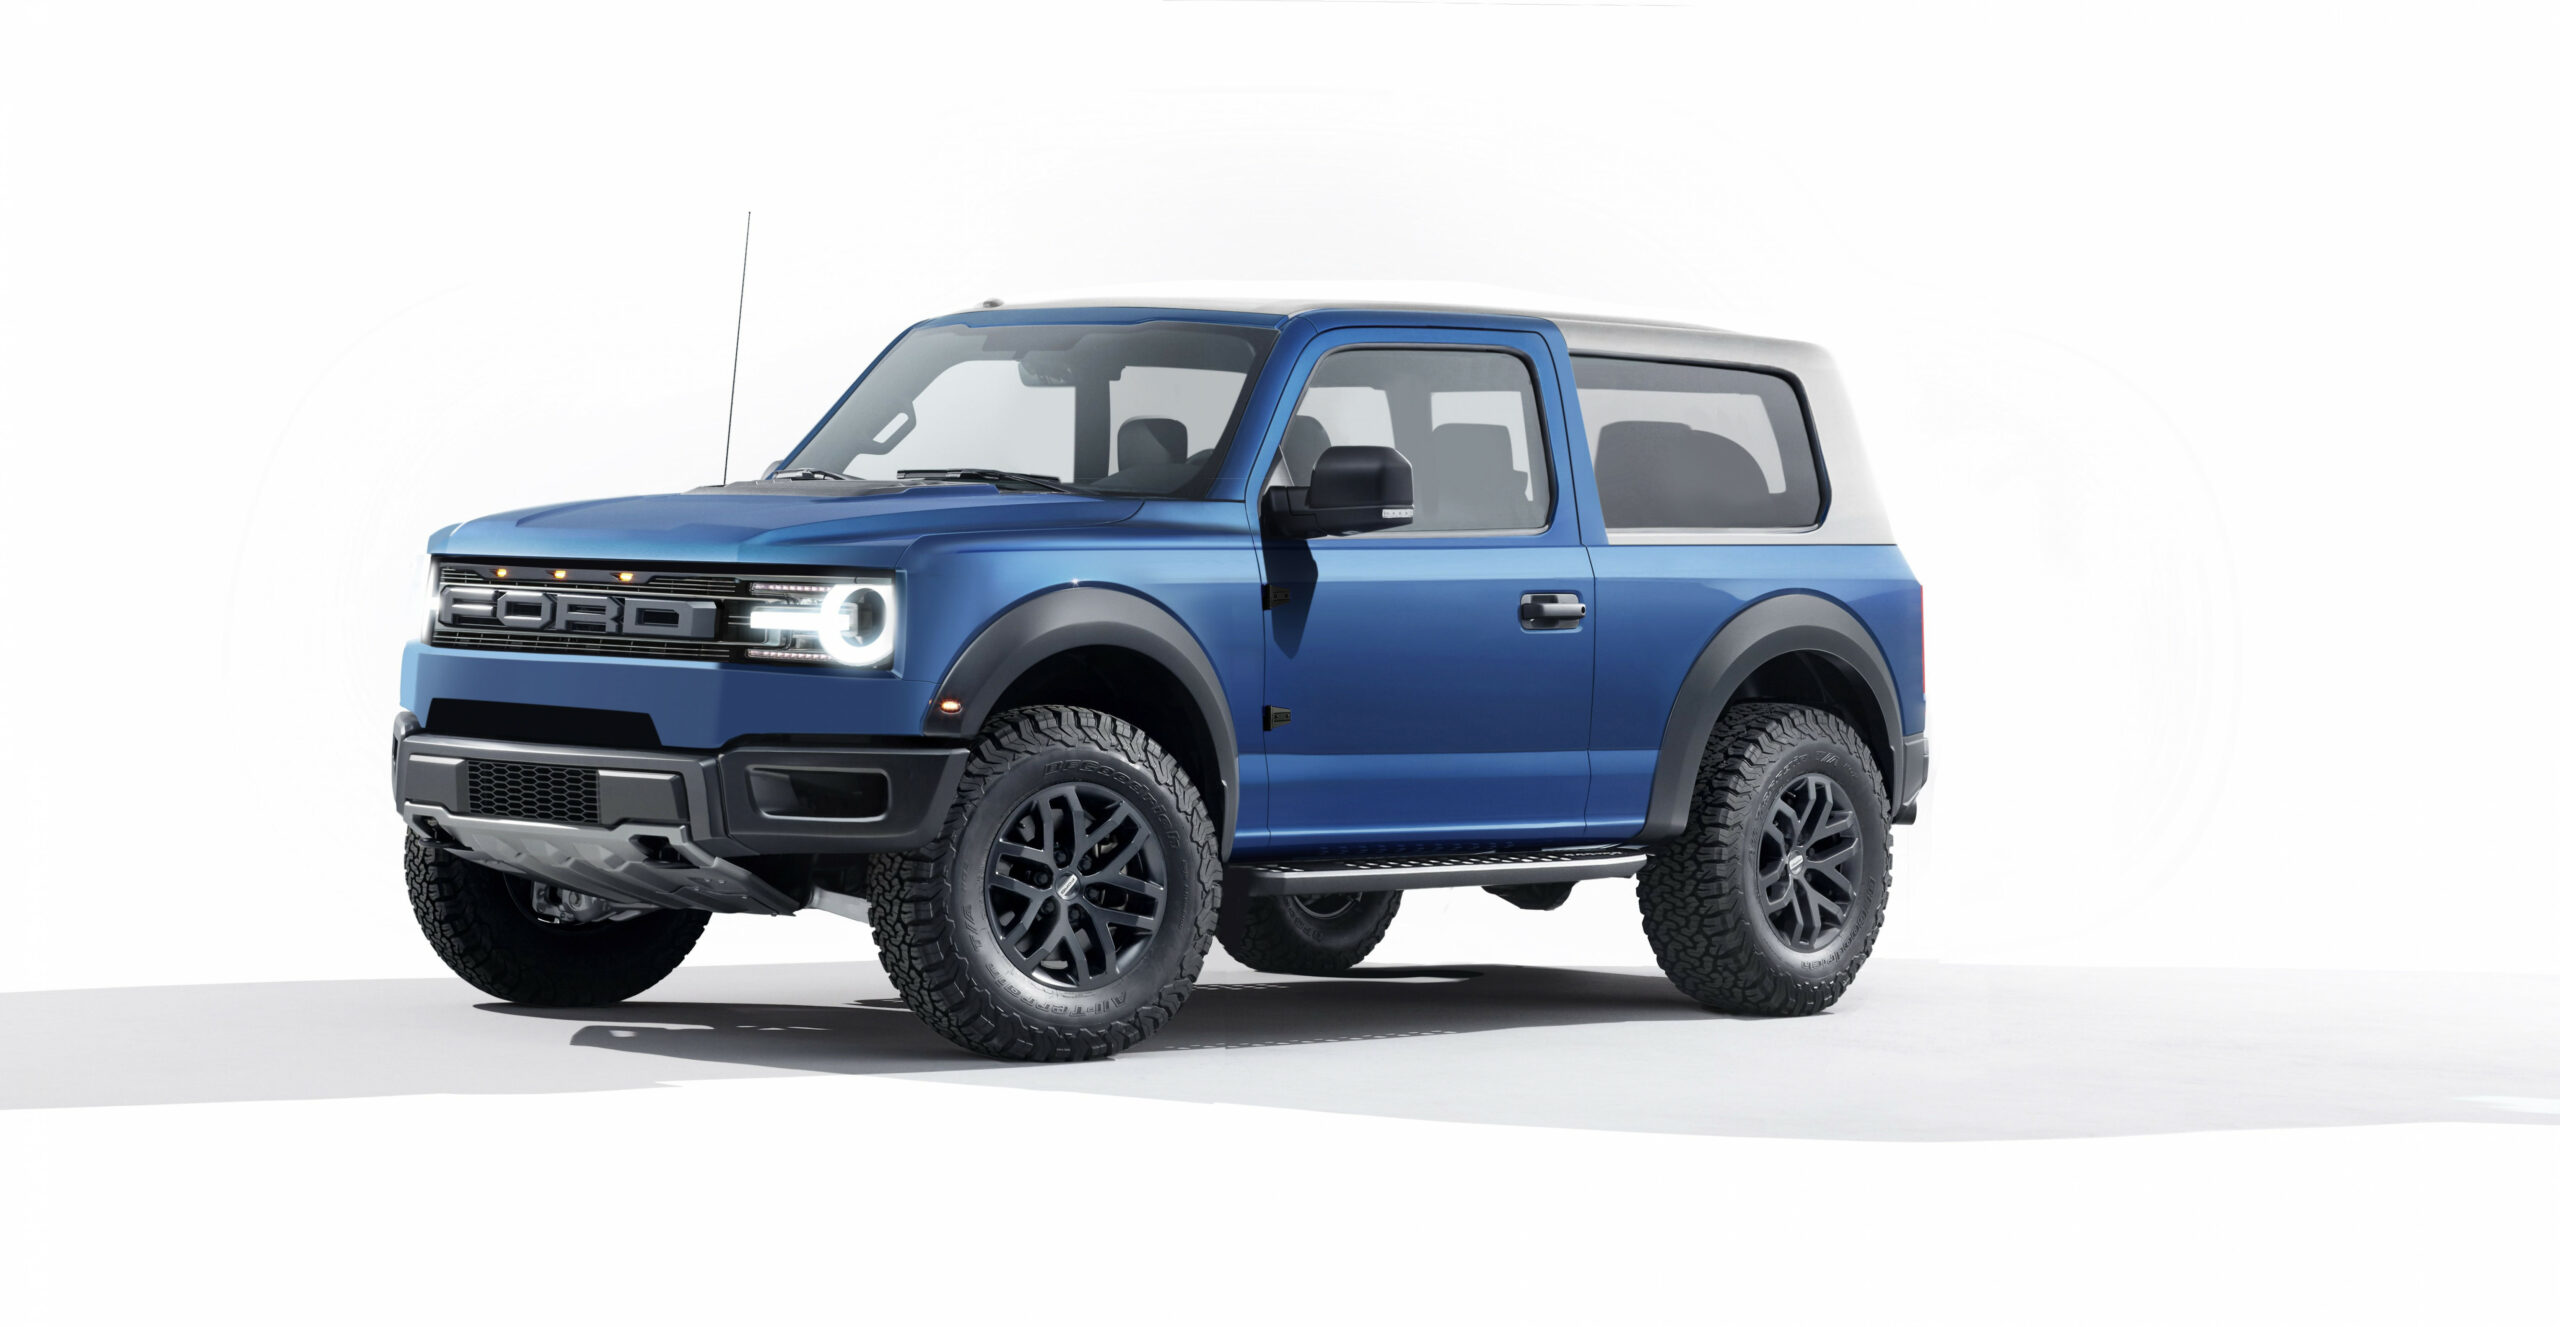 Specs How Much Is The 2022 Ford Bronco